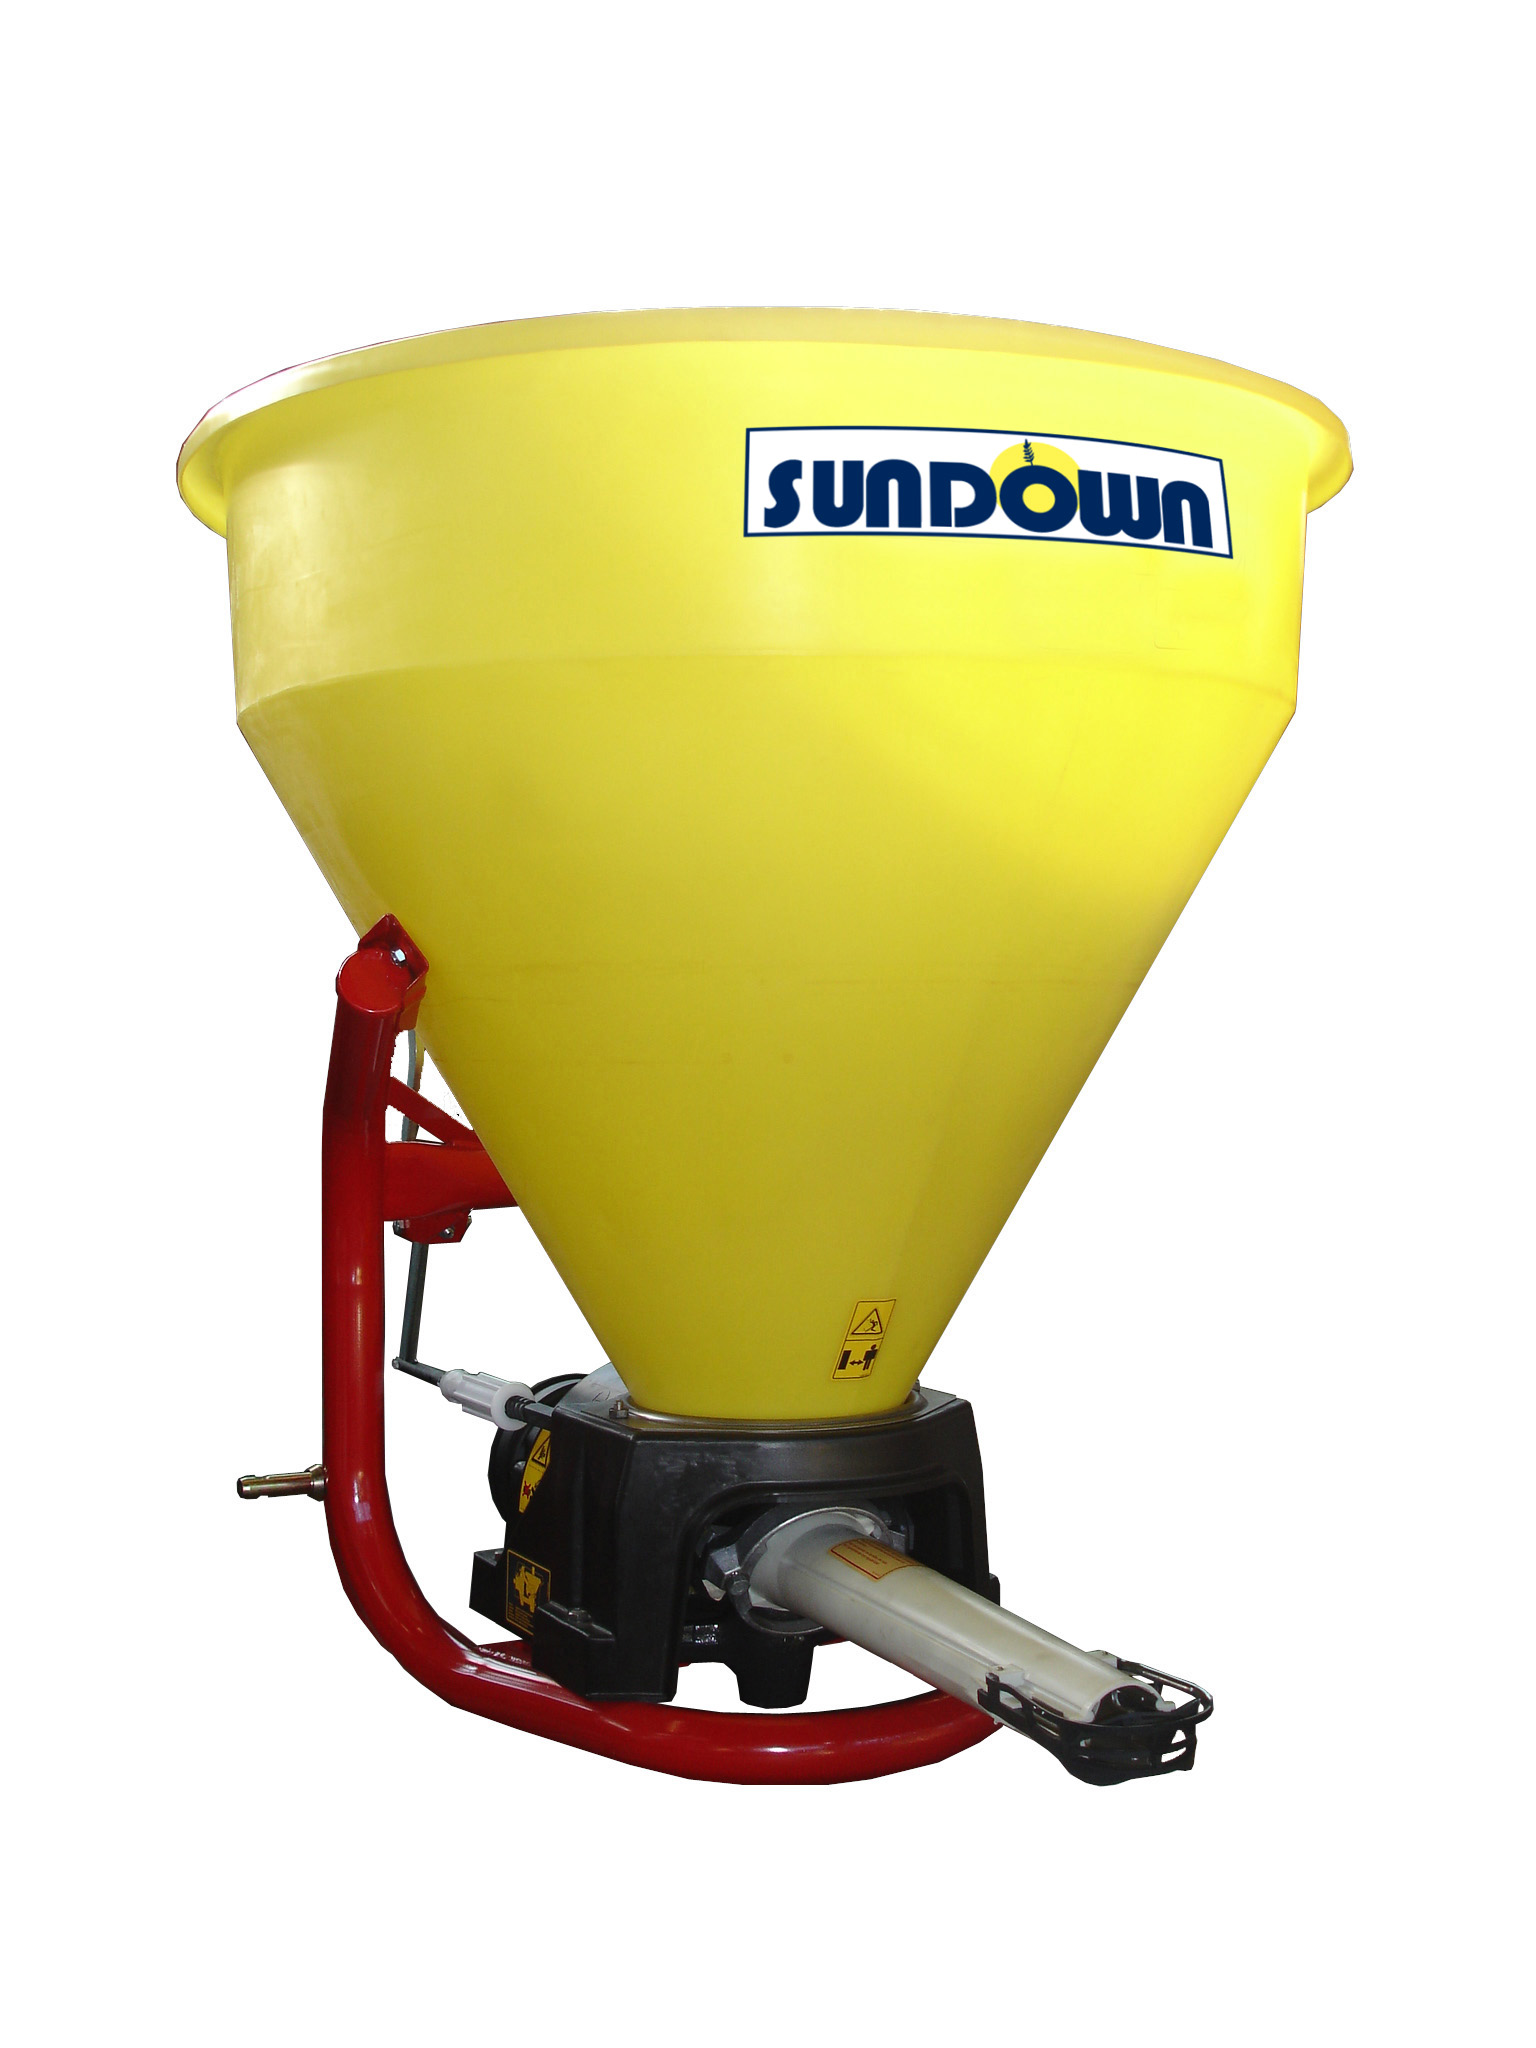 PDC400C Economy Pendulum Spreader Sundown 3 Pt. Hitch Model w/PVC Hopper & PTO